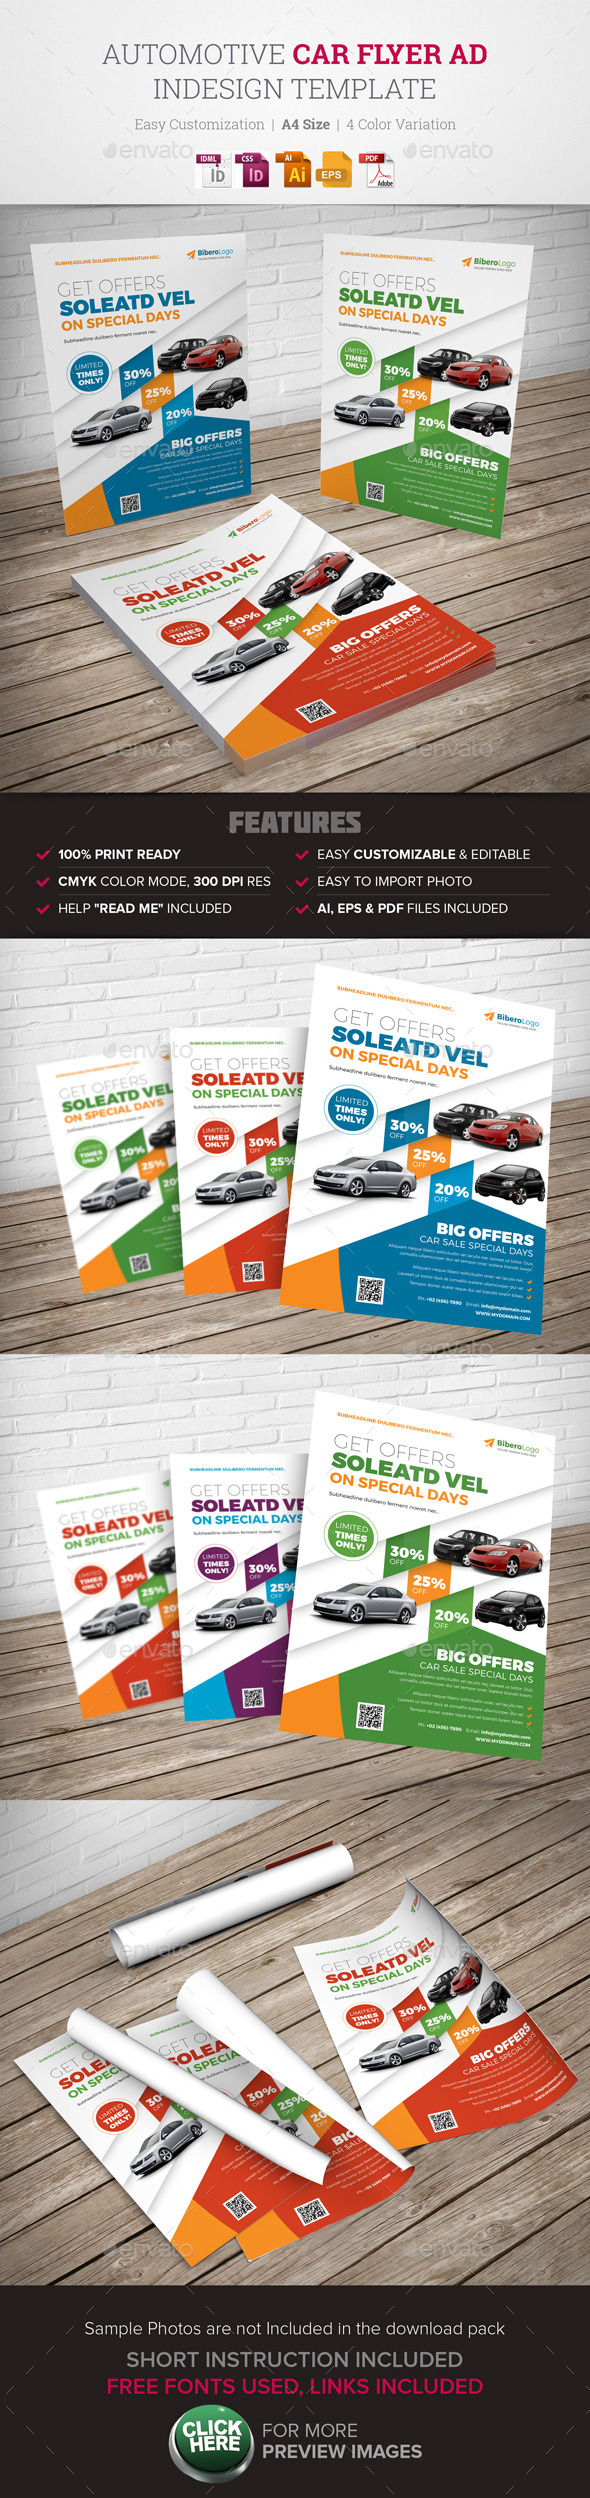 Automotive Car Flyer Ad Indesign Template - Corporate Flyers